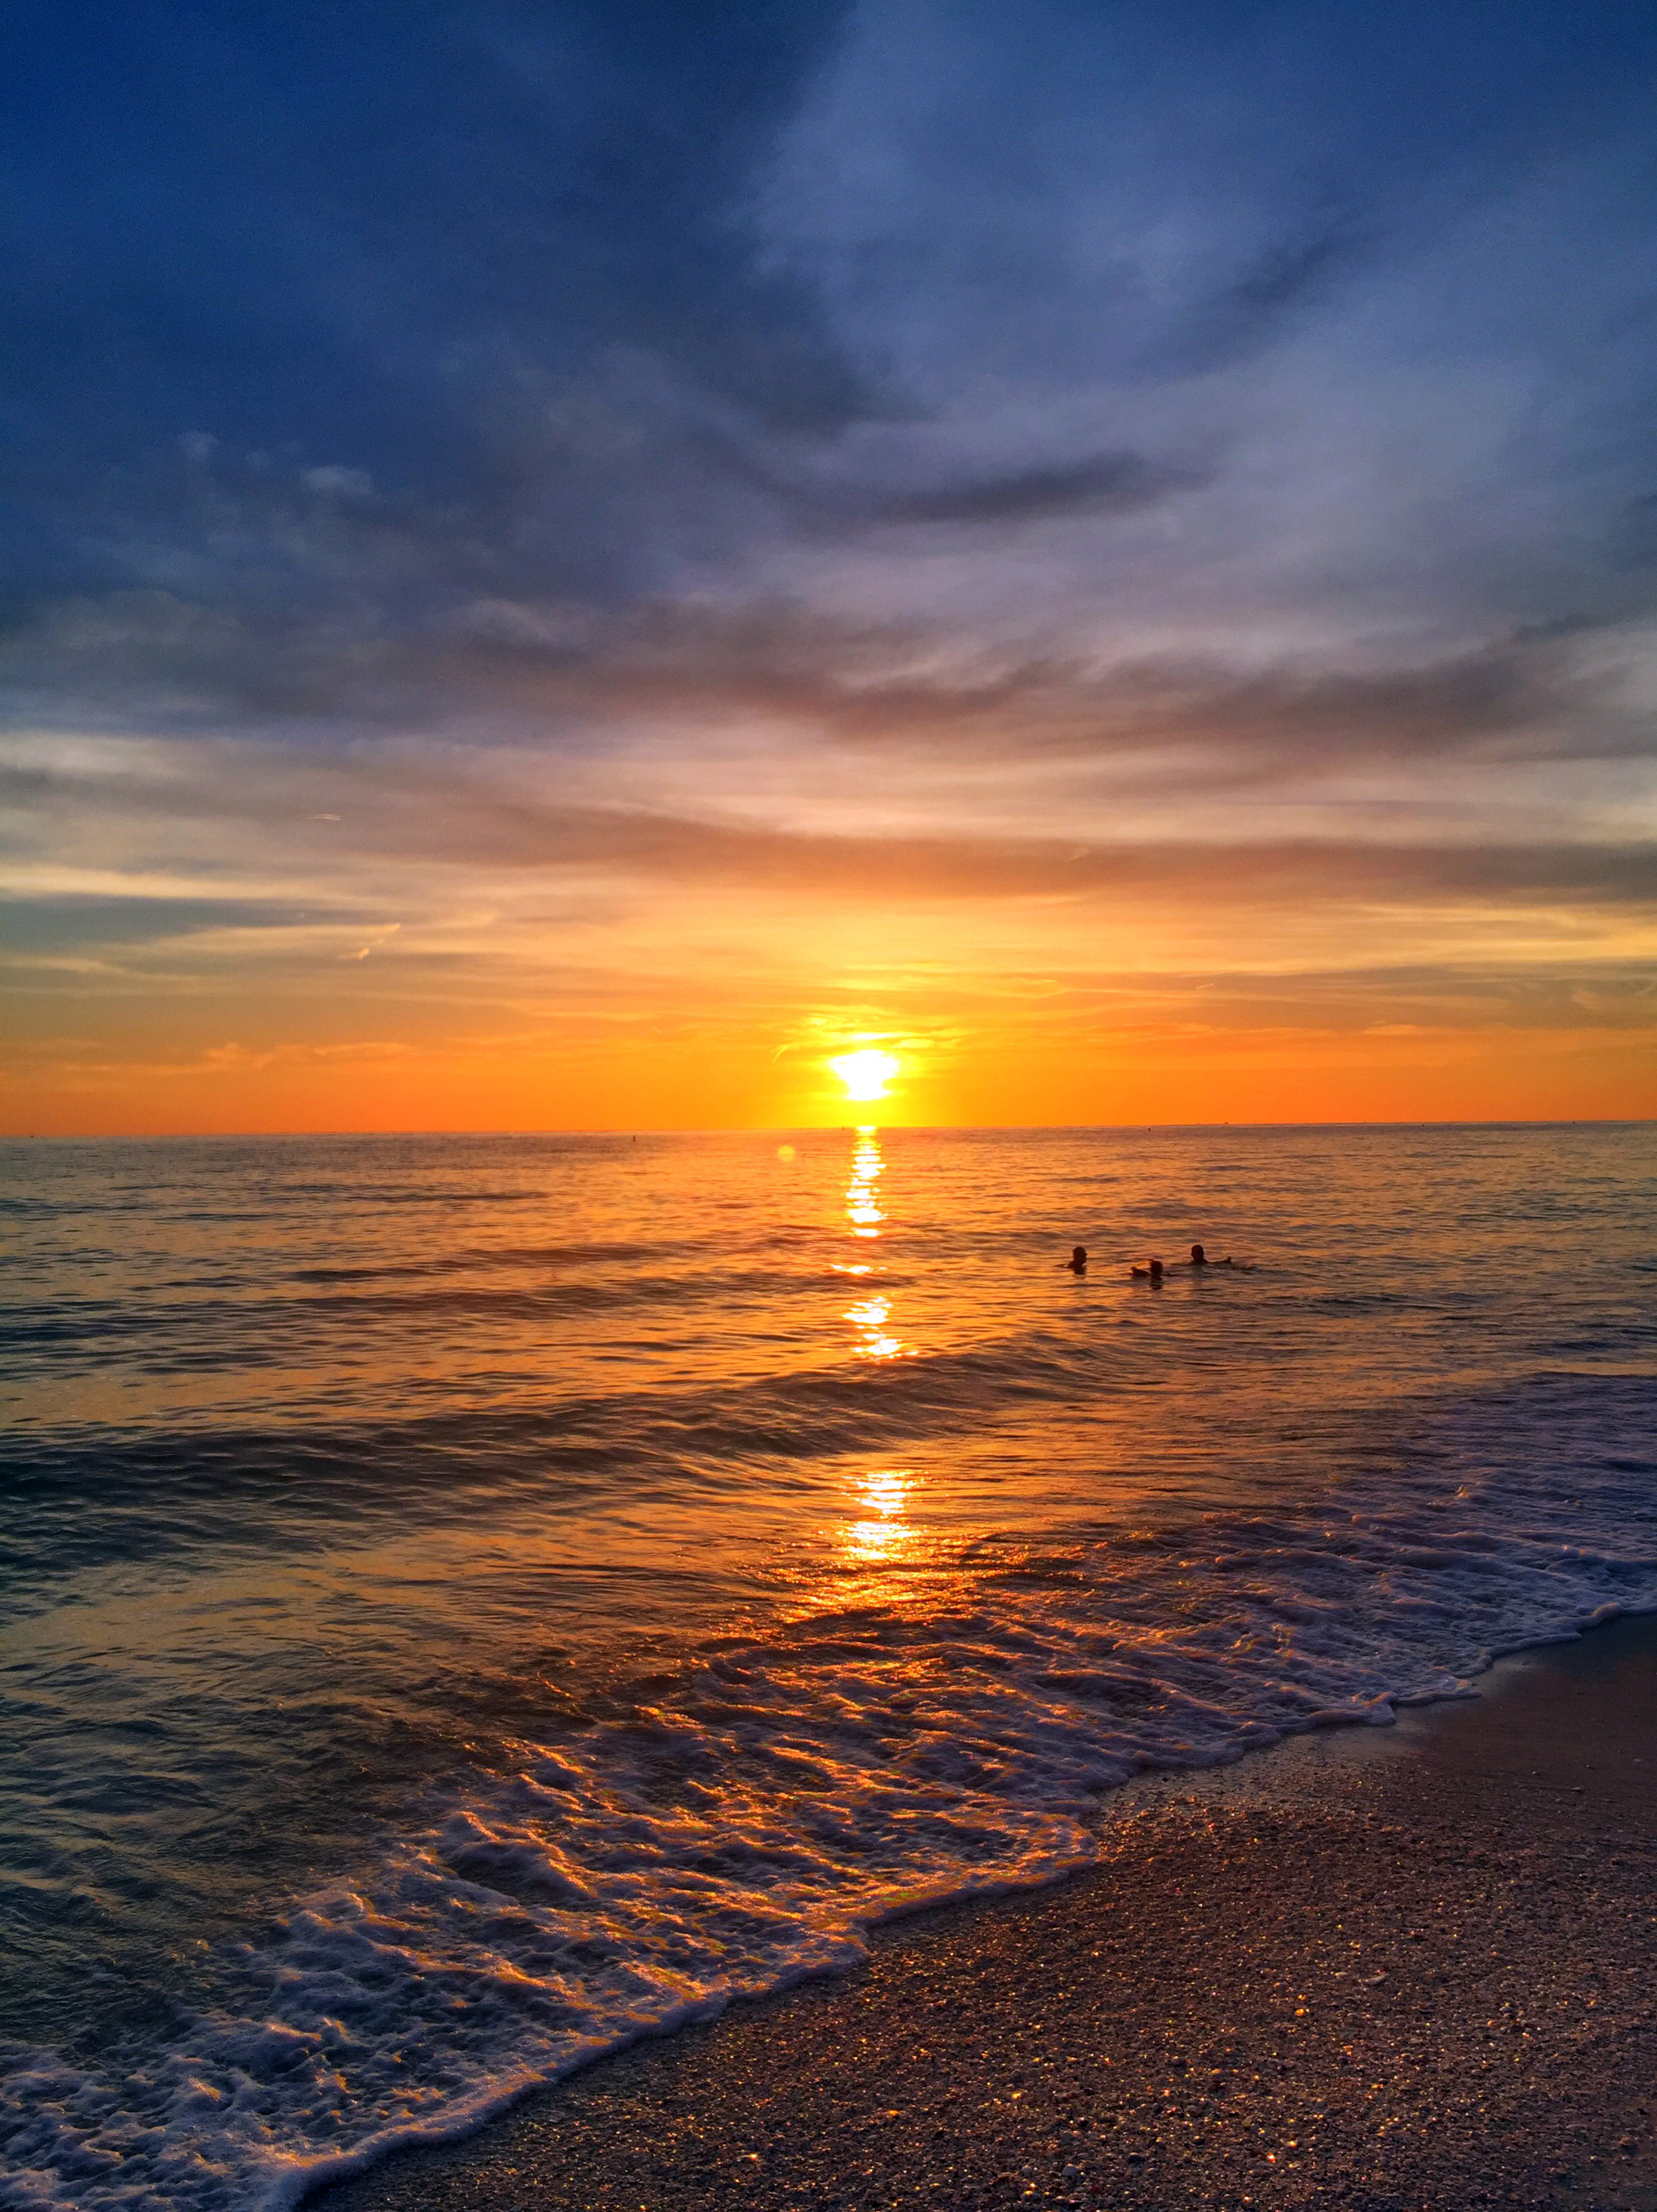 Denise M. Reagan captures a sunset on Sunset Beach near St. Petersburg courtesy of a summer half-Friday.